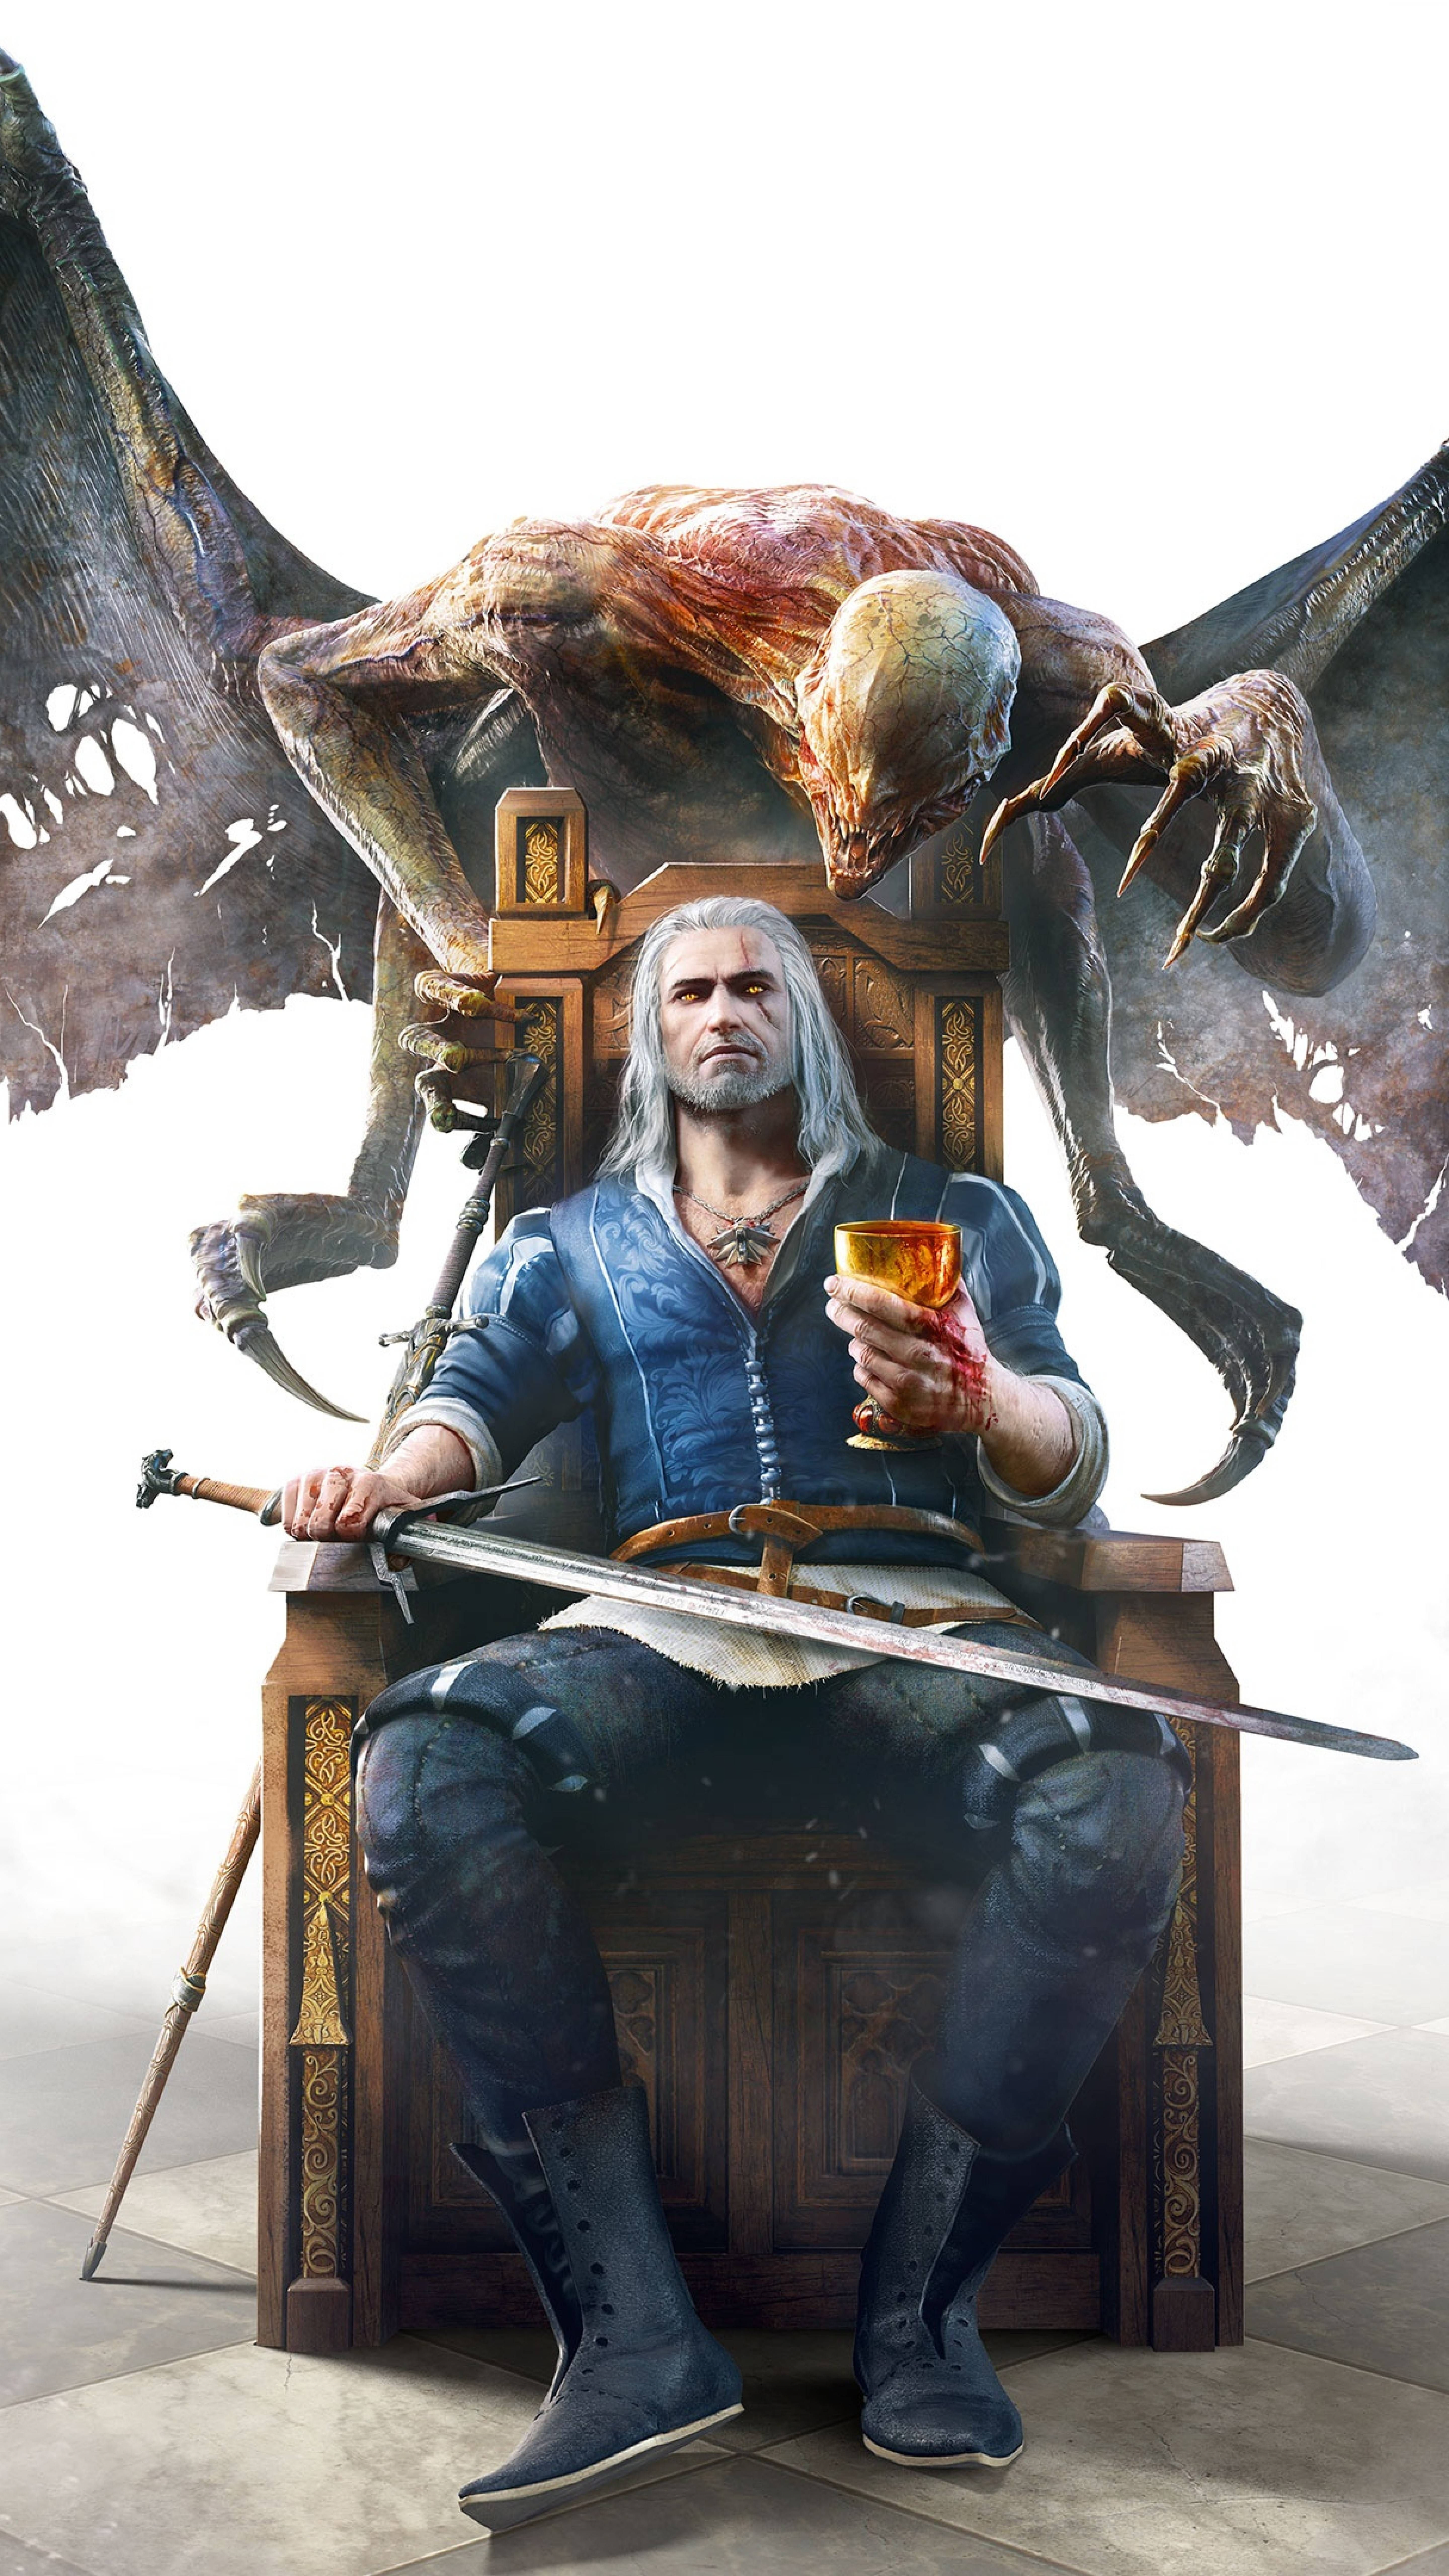 1080p And Some 4k Wallpaper For Phones The Witcher 3 The Witcher The Witcher Wild Hunt